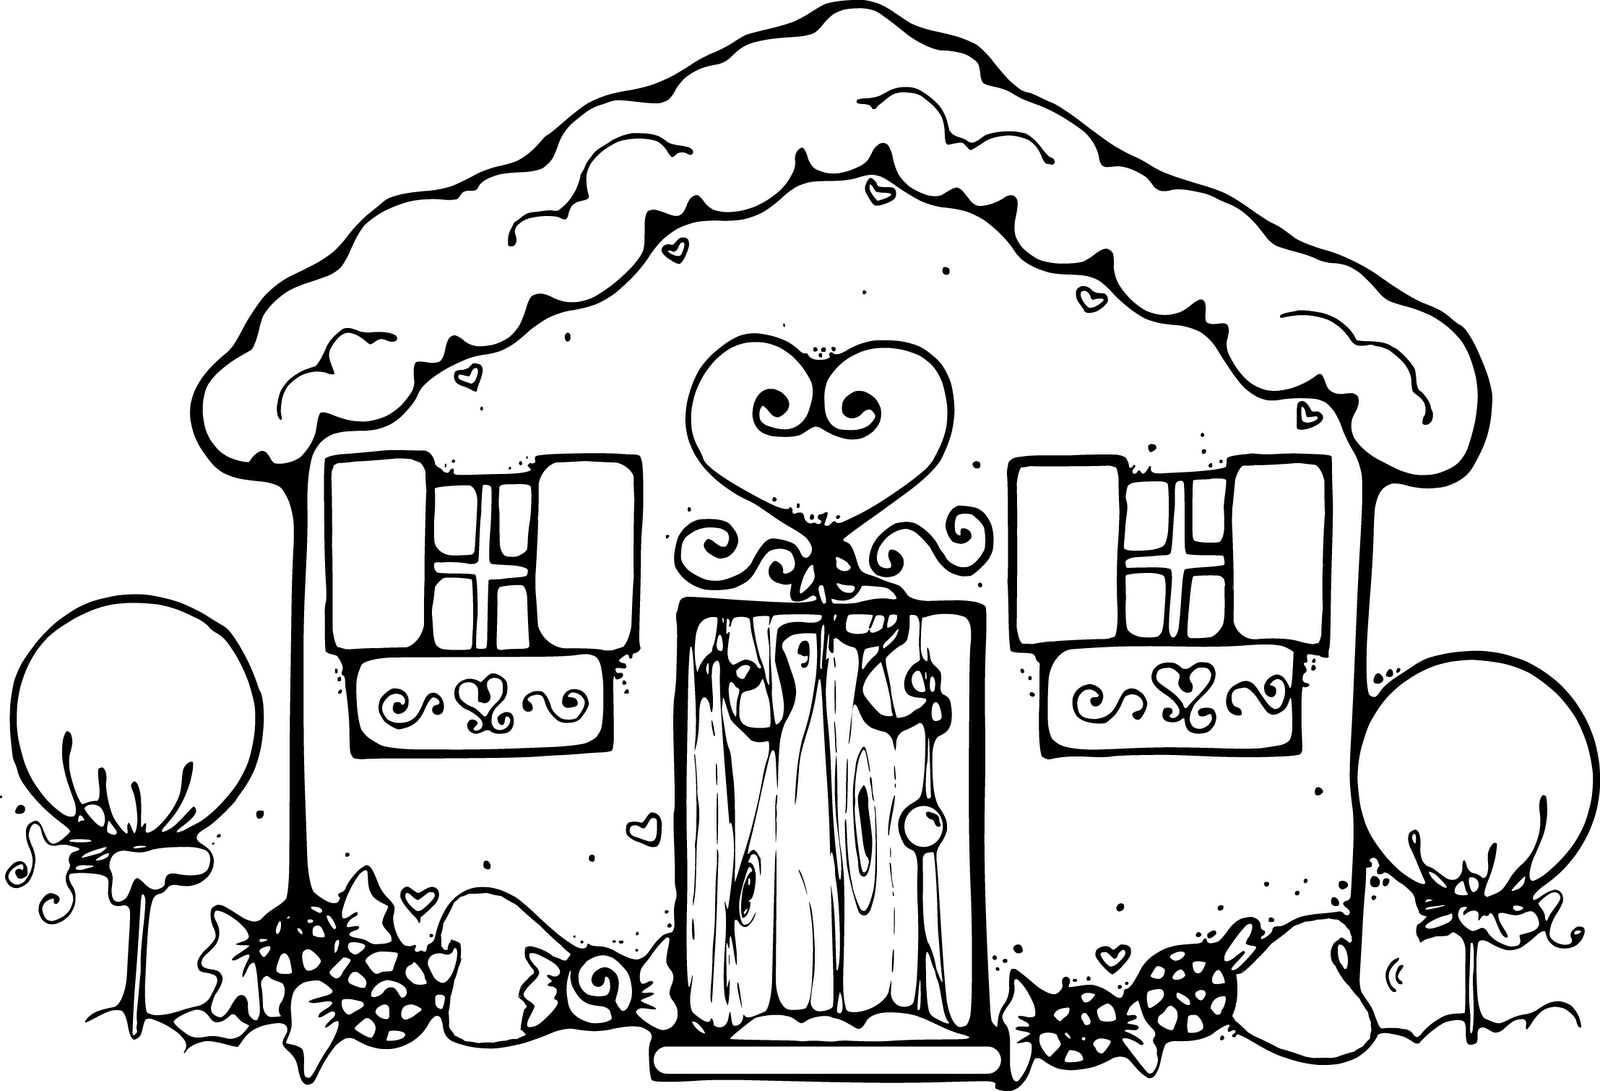 gingerbread house colouring pages printable holiday coloring pages parents gingerbread pages colouring house